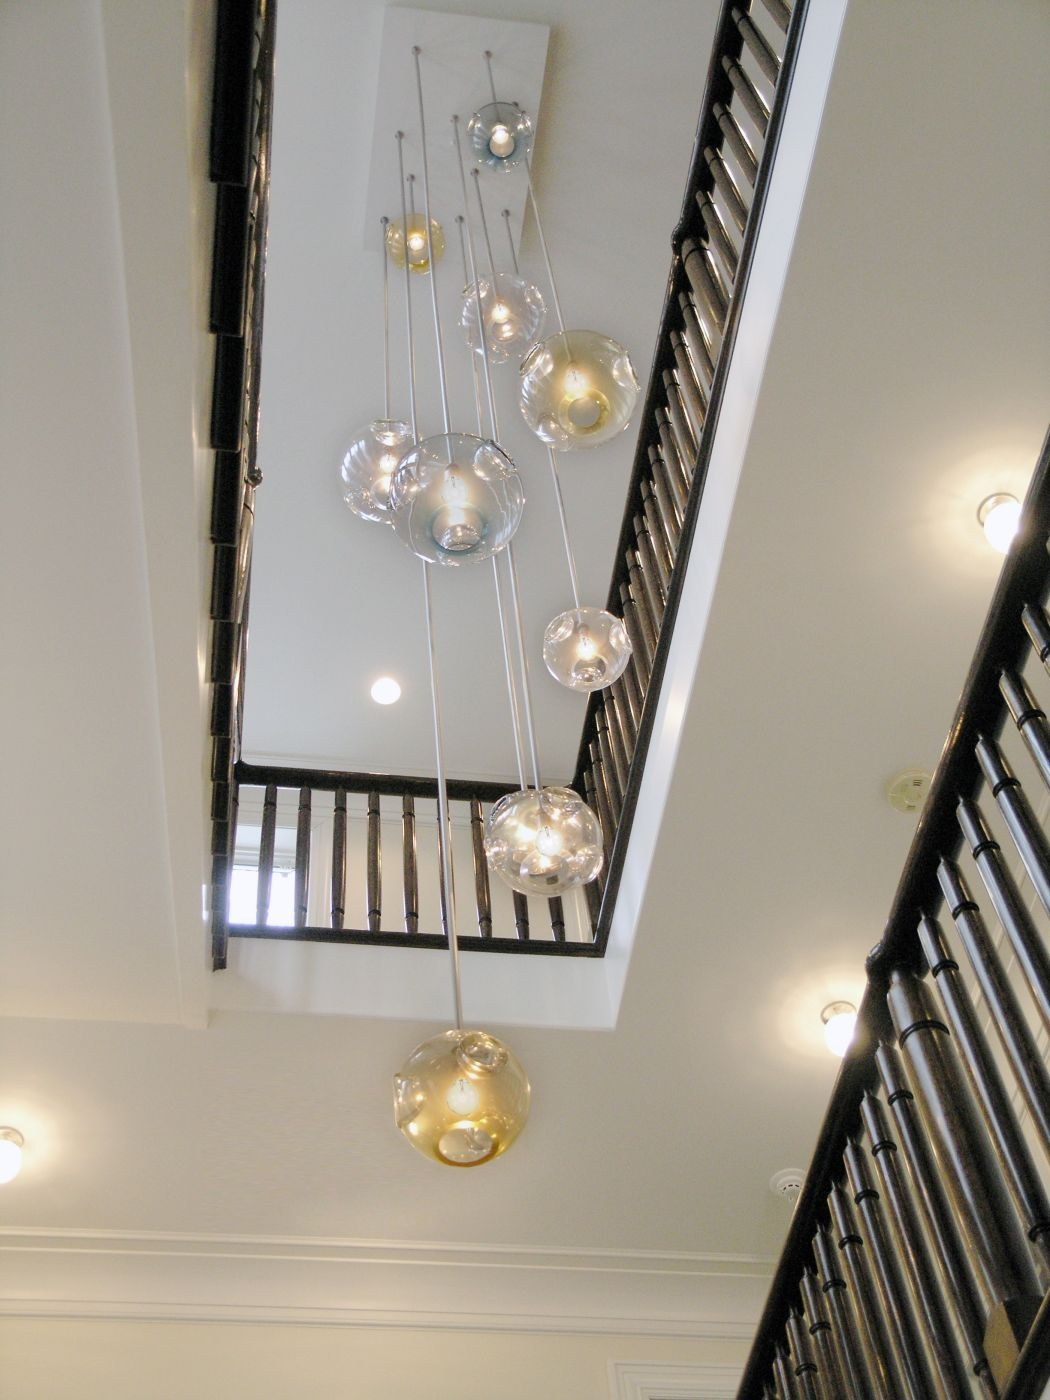 Jgooddesign Aqua Chandelier Pertaining To Stairwell Chandeliers (Image 7 of 15)